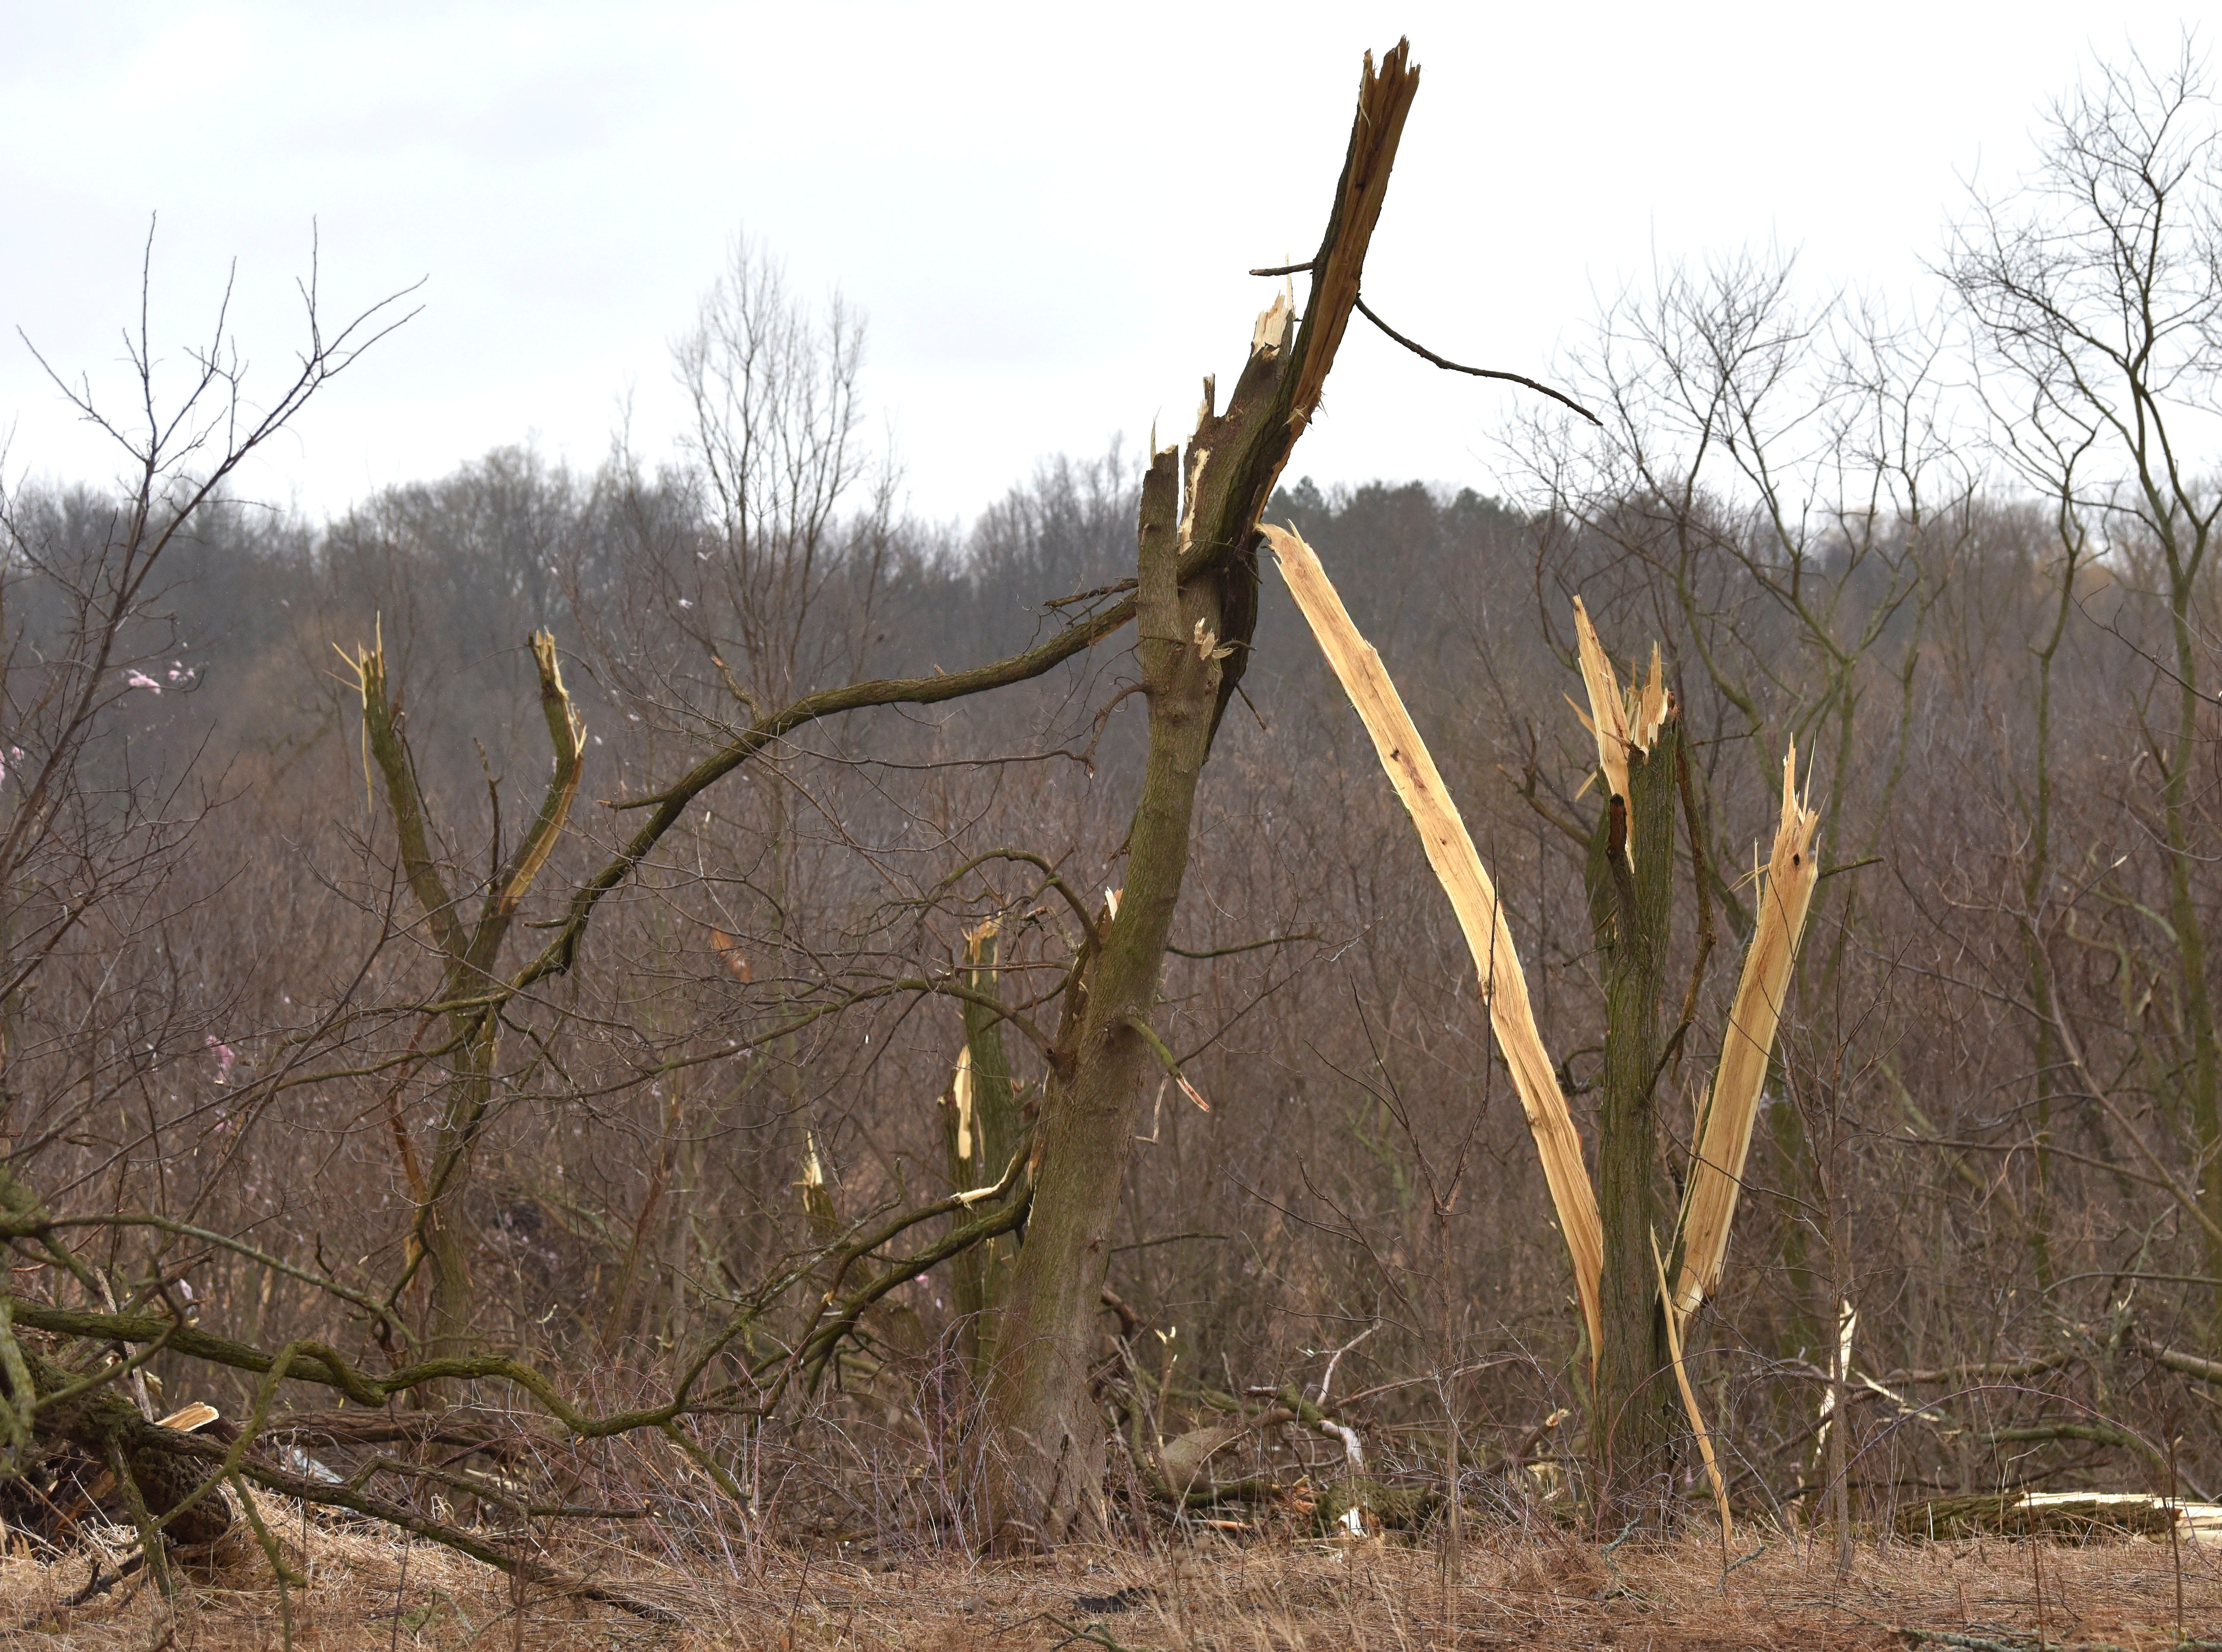 Some trees are snapped in half and other trees are whole along Newburg Rd. near Foundry Rd. in Vernon Twp.